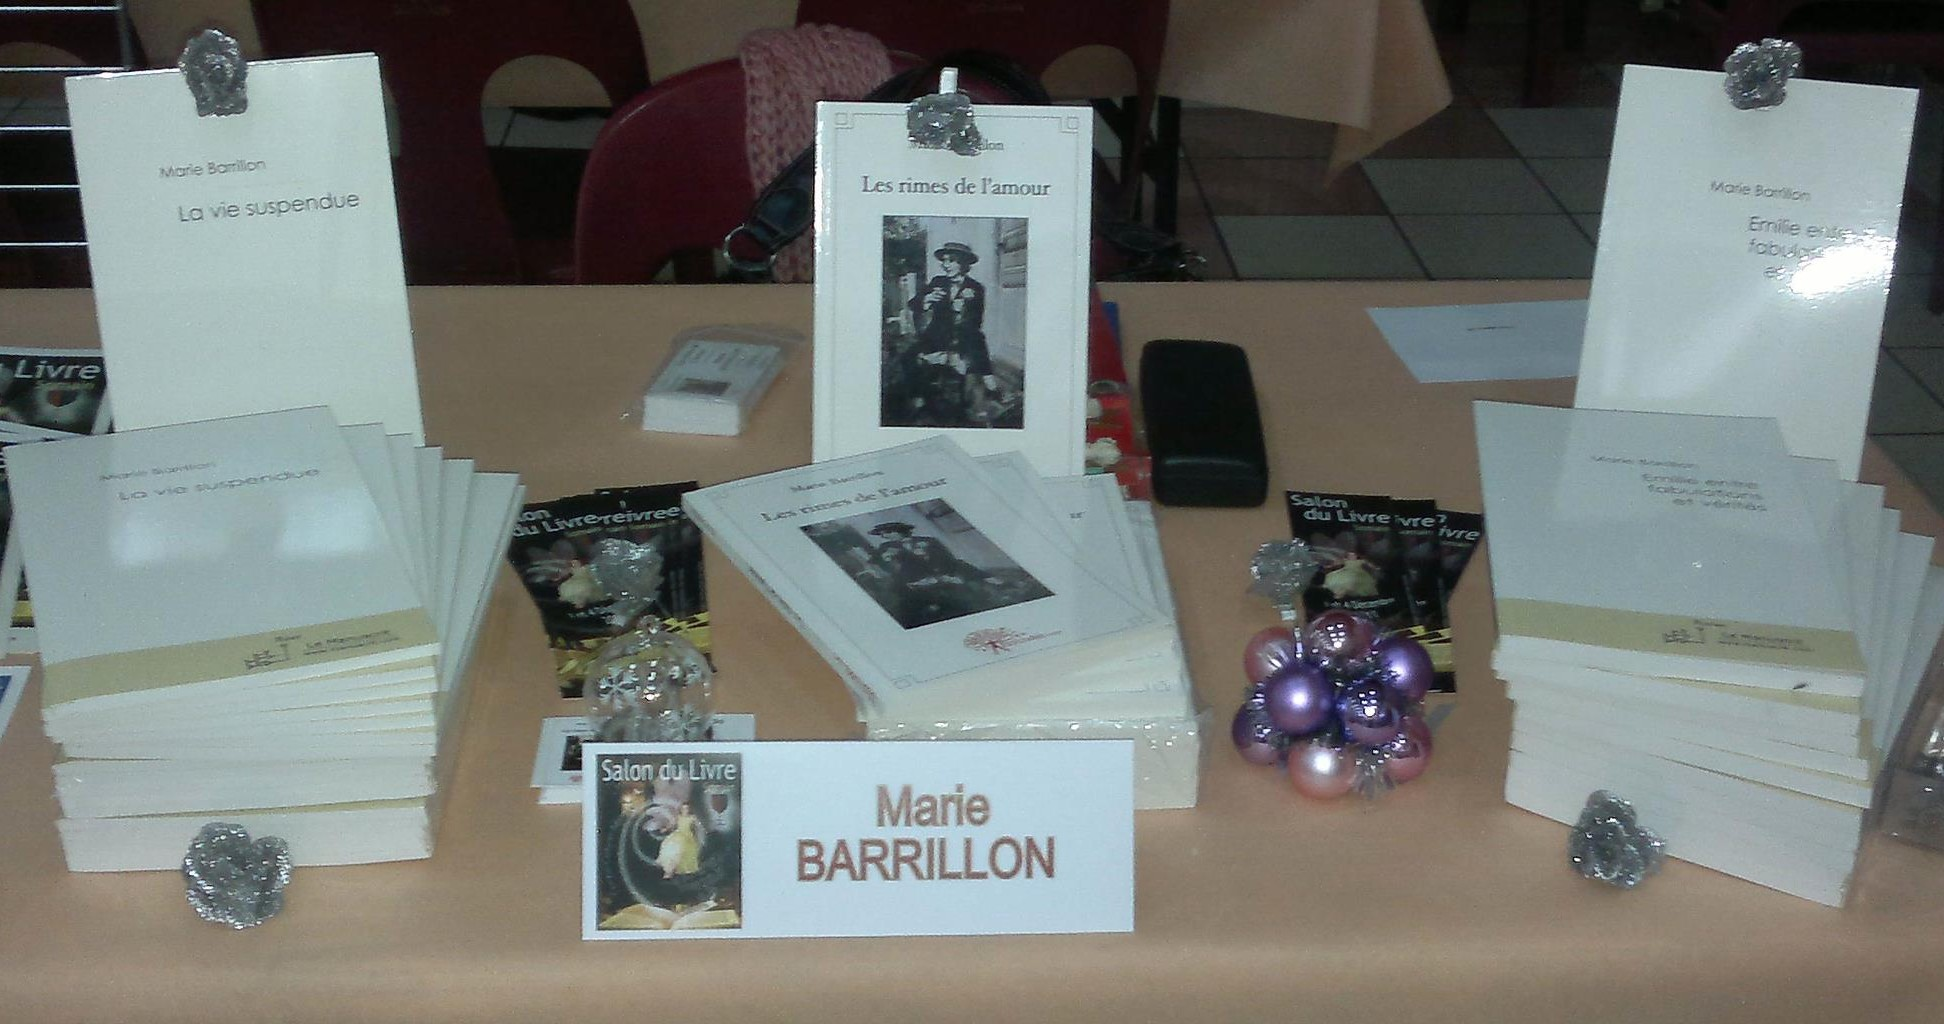 Marie BARRILLON - Salon du livre de Somain (59) - Le 04-12-2011